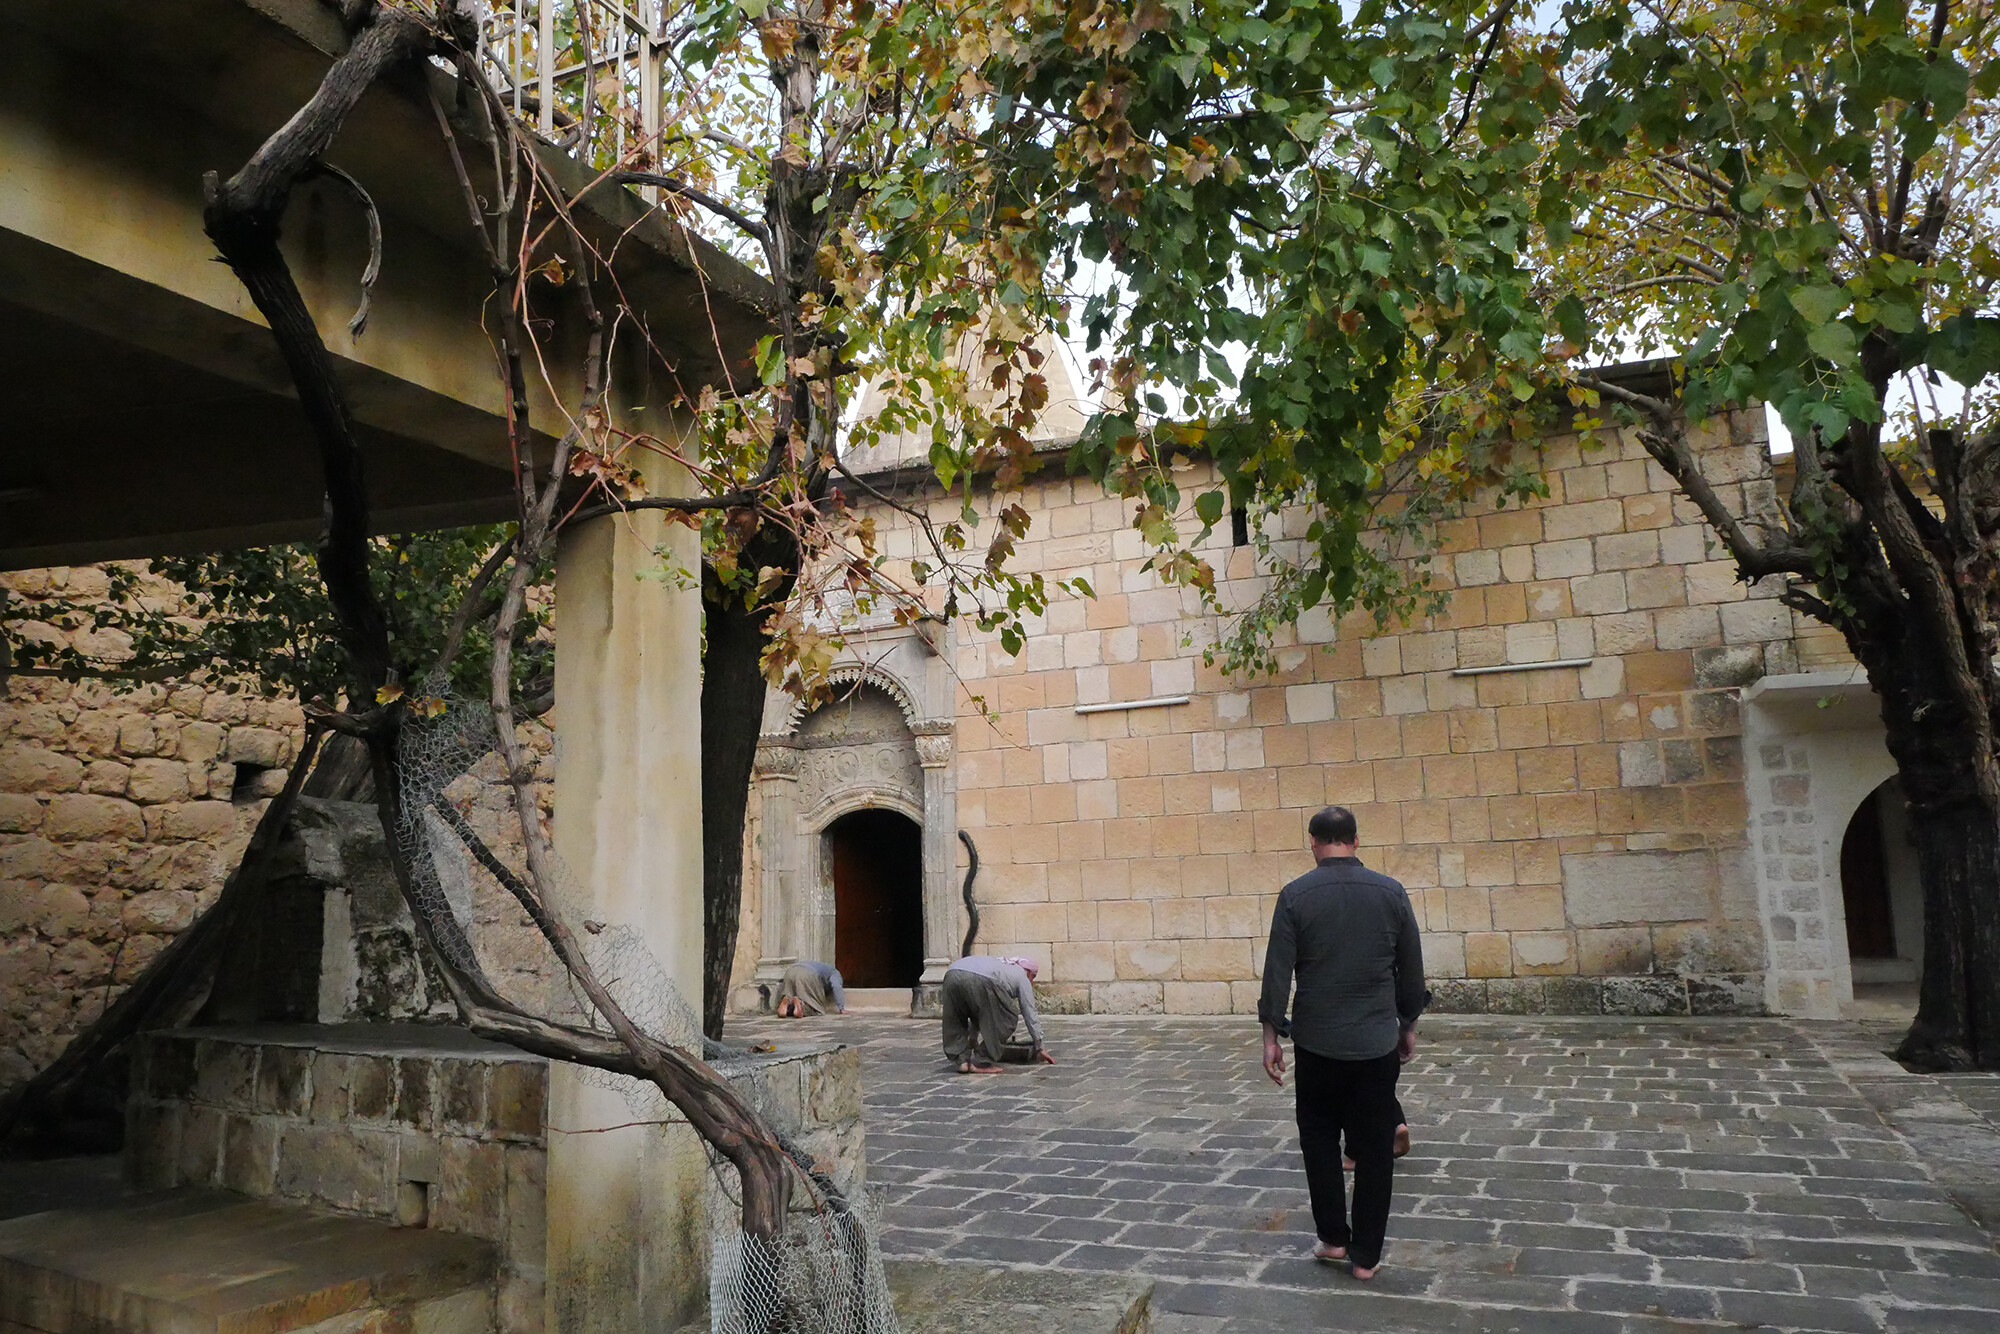 Two people in an outside courtyard at the Lalish Temple in daylight under a tree